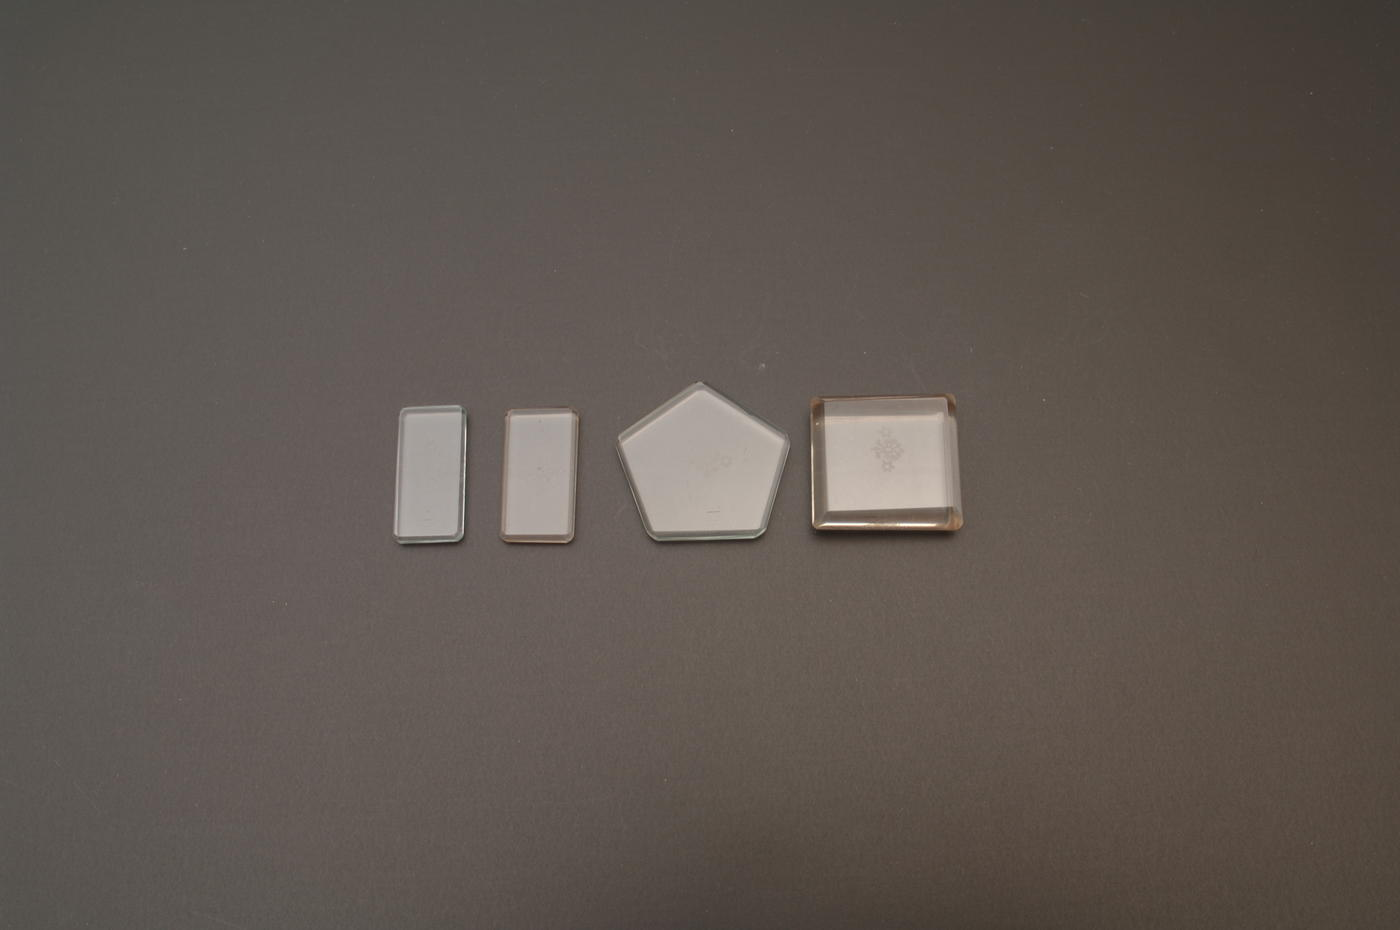 Set of 4 small solid glass weights in rectangle and pentagon shapes